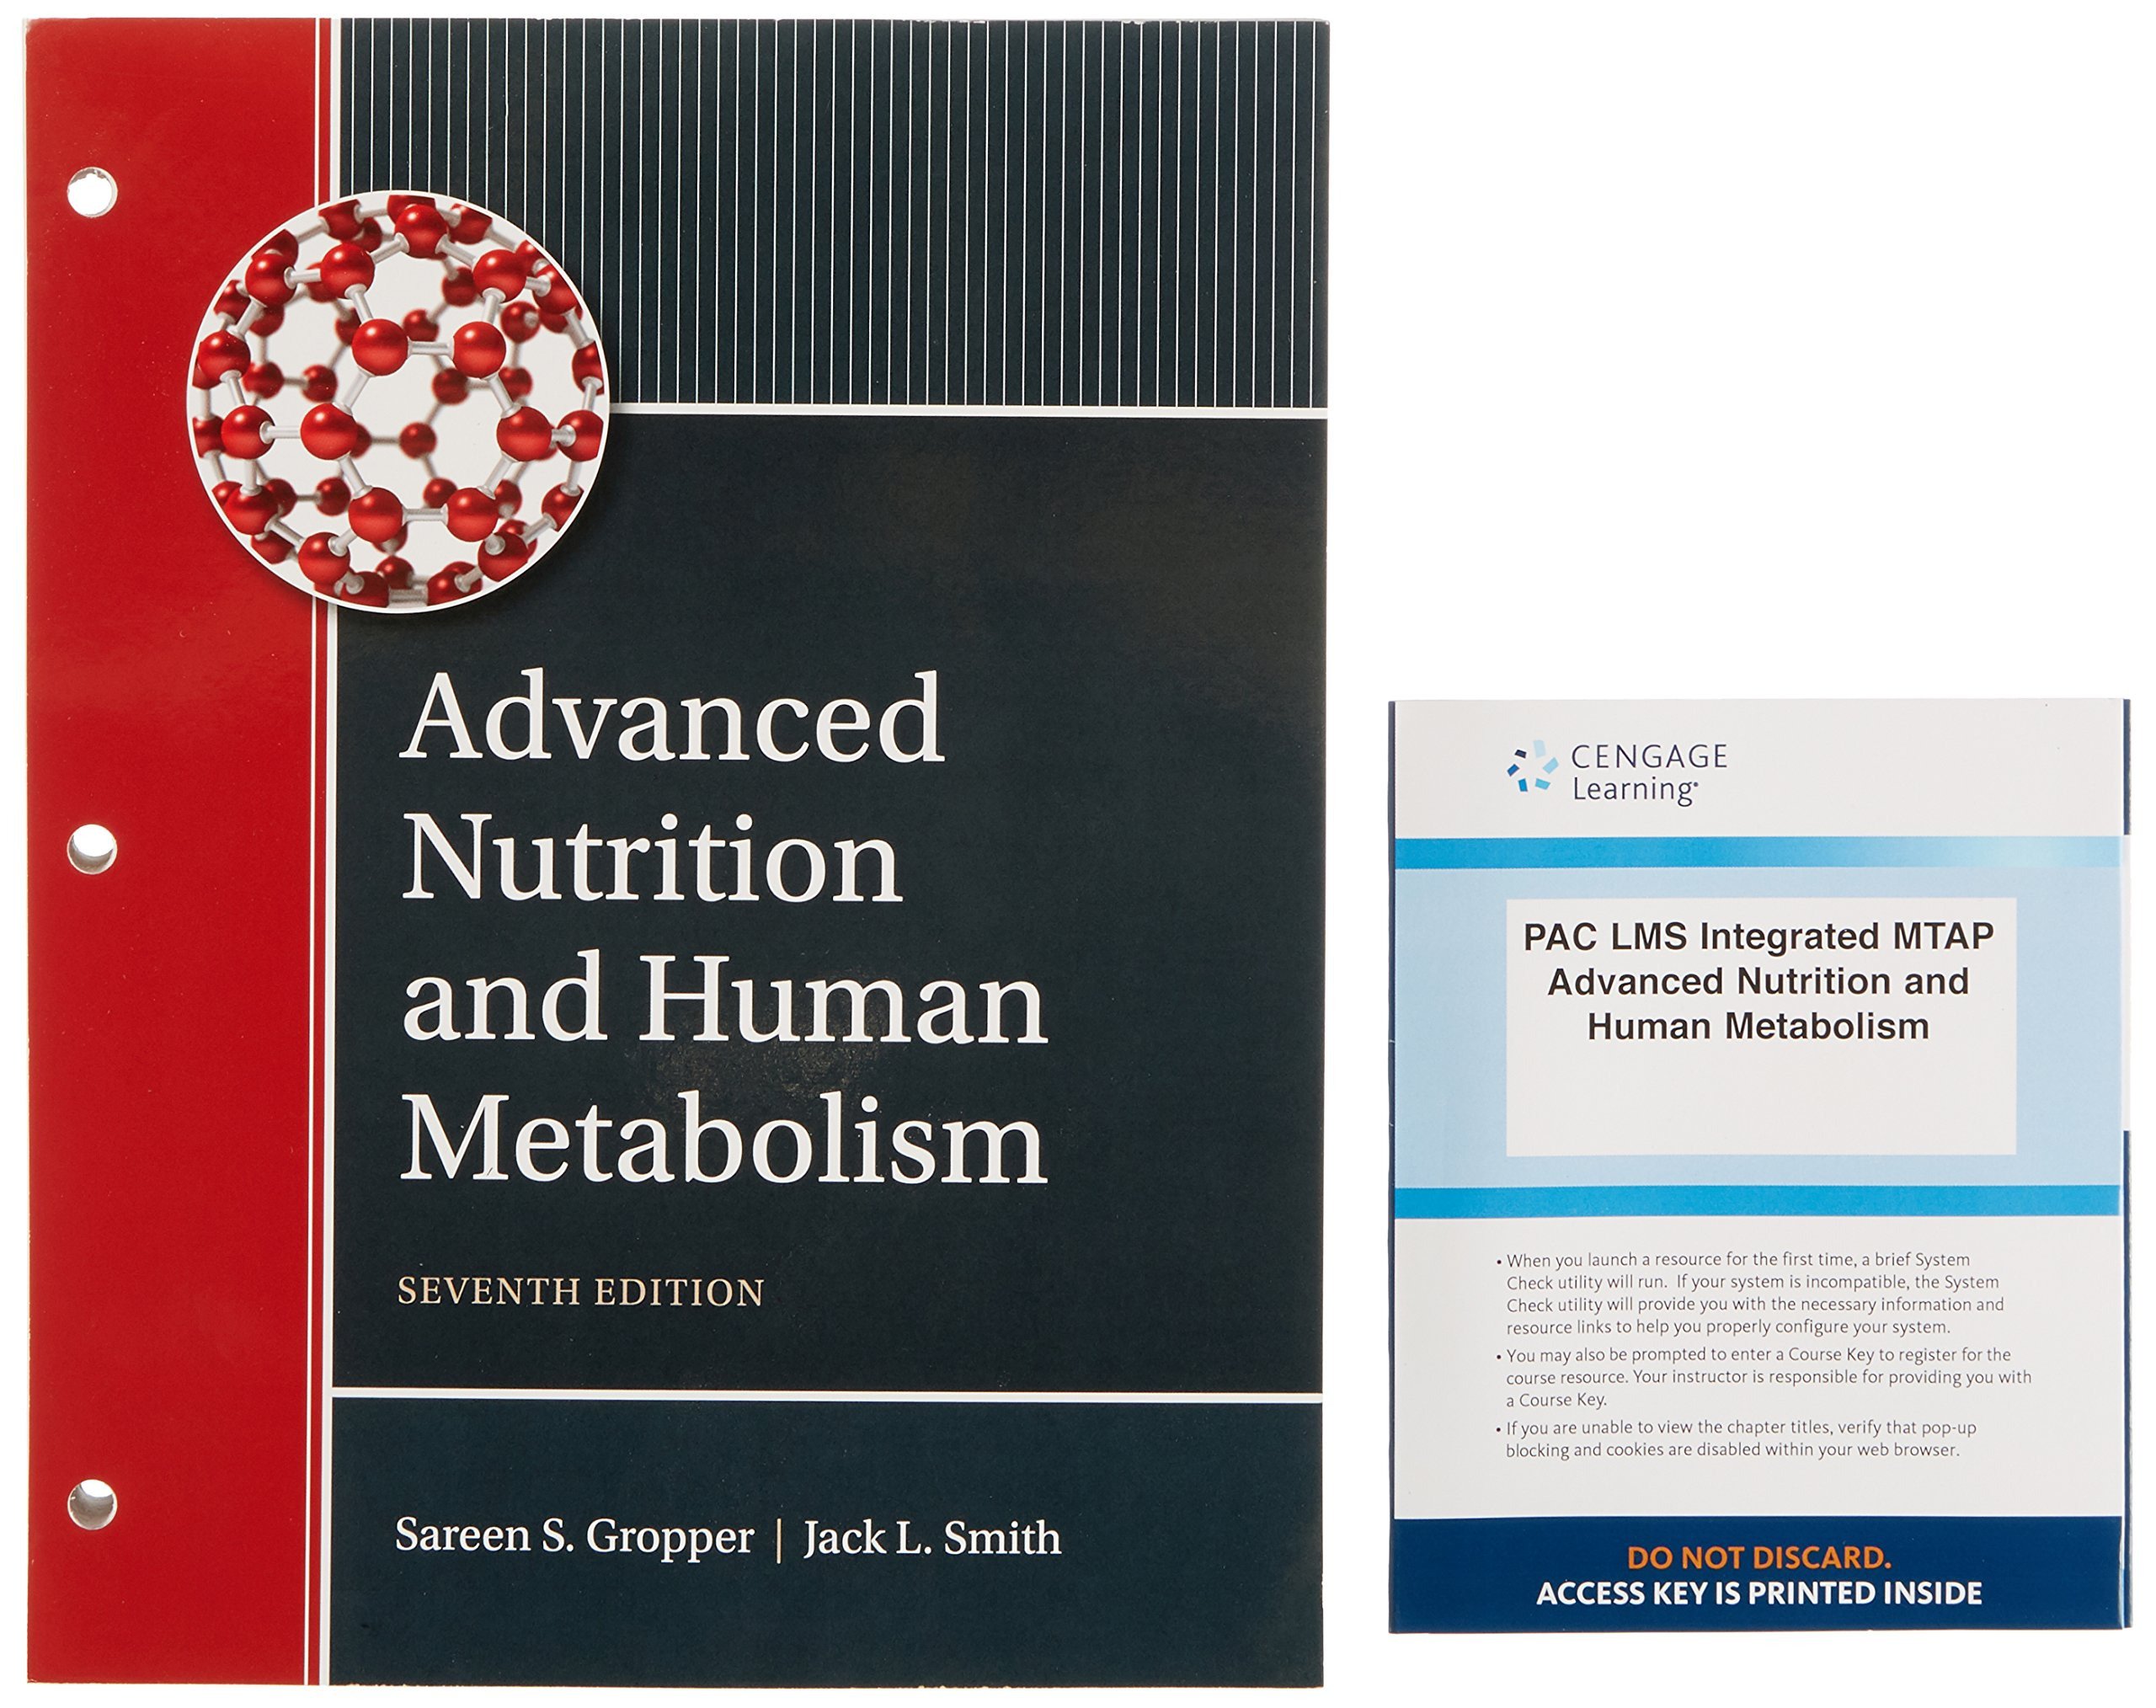 Advanced Nutrition and Human Metabolism: Sareen S. Gropper, Jack L. Smith,  Timothy P. Carr: 9781337593519: Books - Amazon.ca